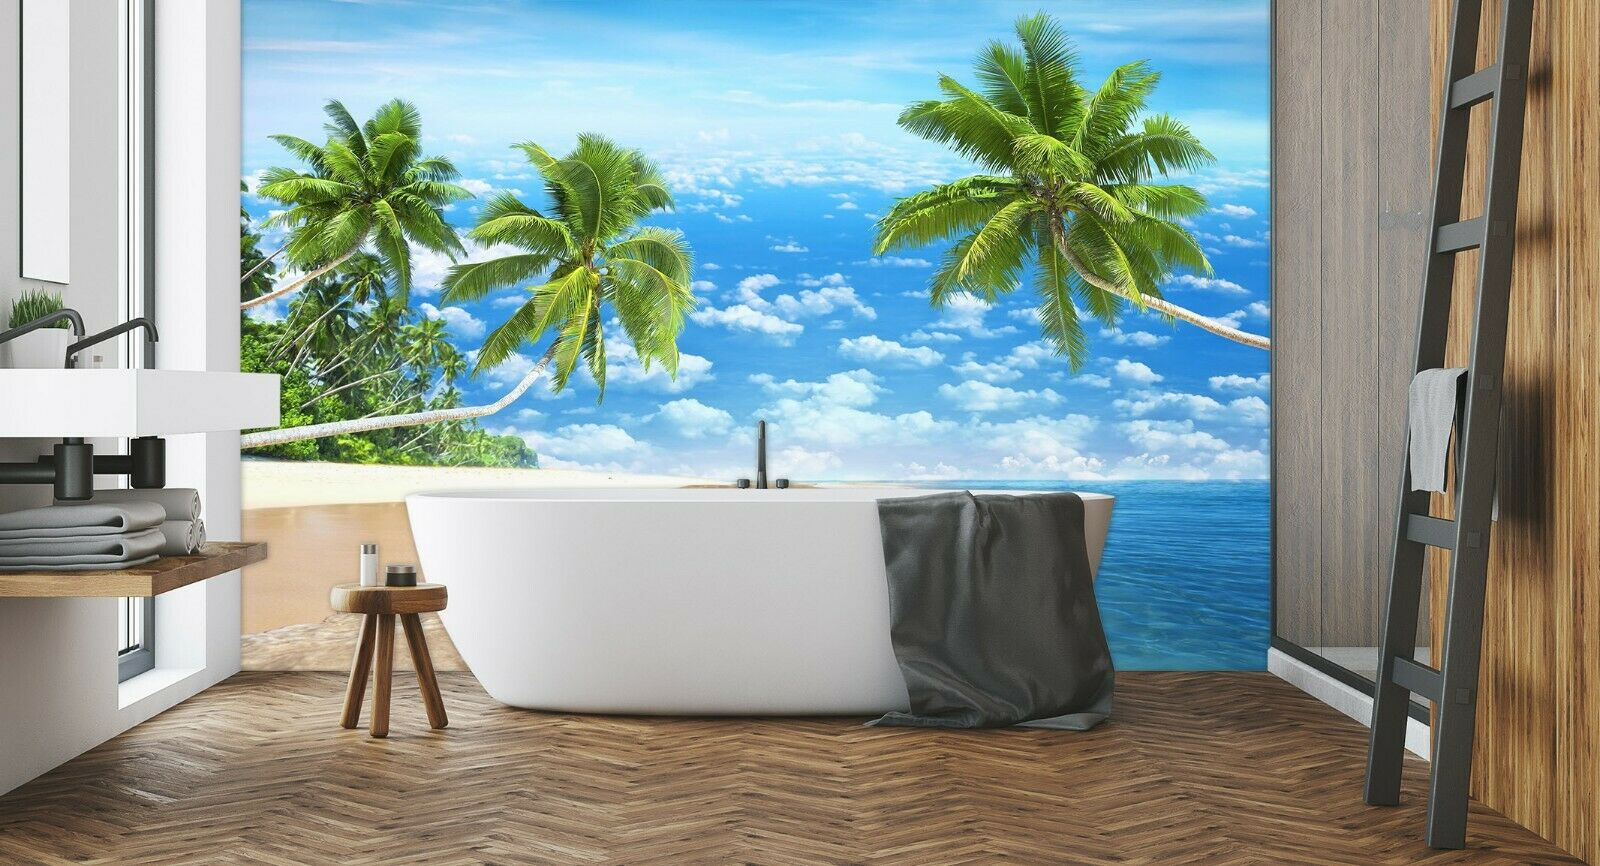 3D Coconut Tree Beach R971 Wallpaper Wall Mural Self-adhesive Commerce Amy